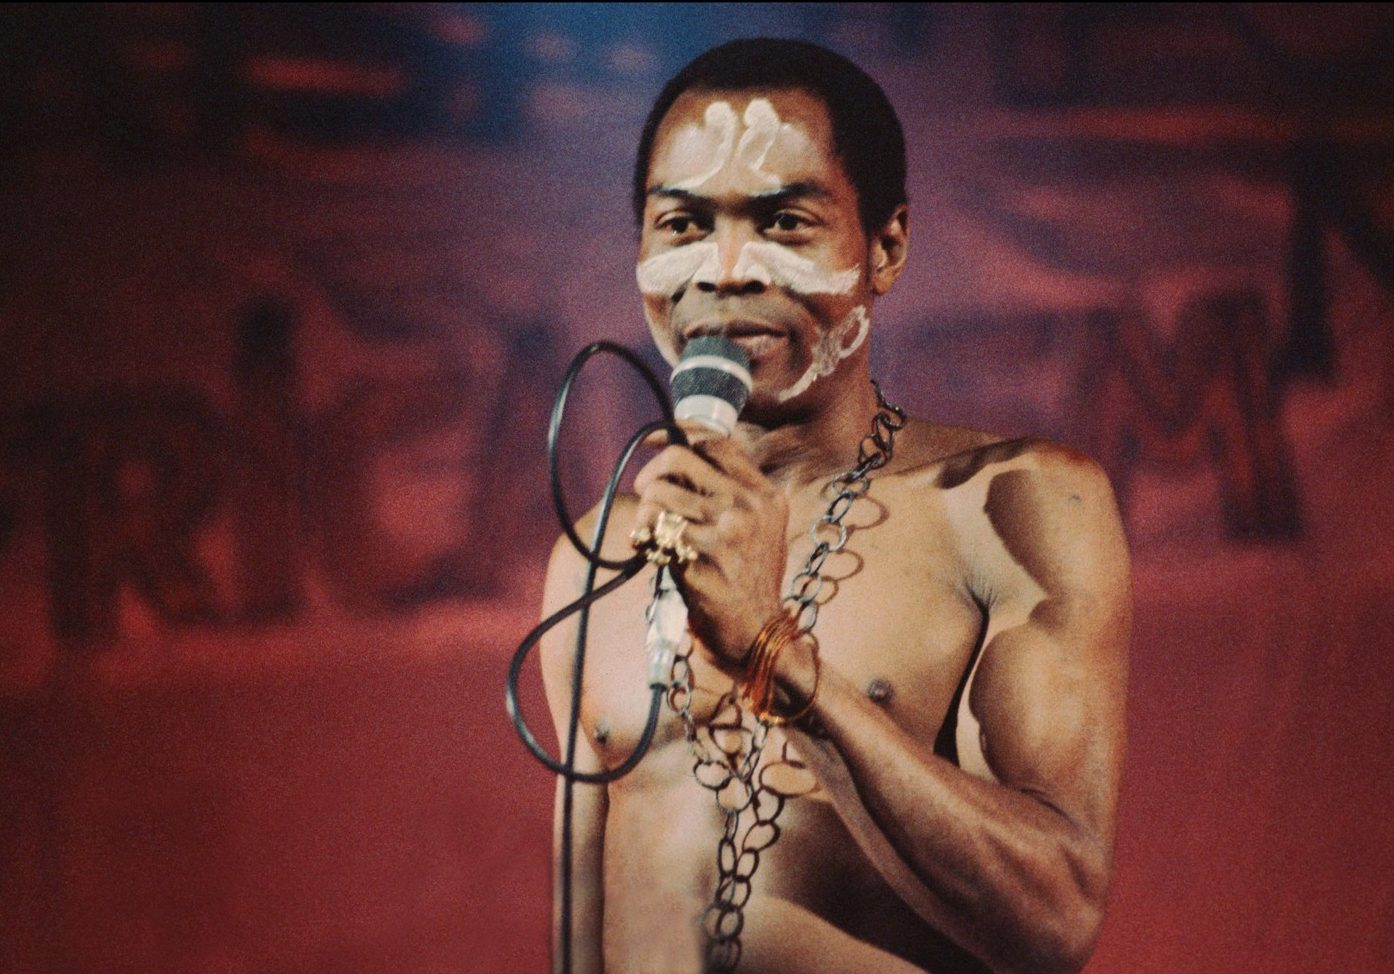 fela-kuti-nominated-for-2021-rock-and-roll-hall-of-fame